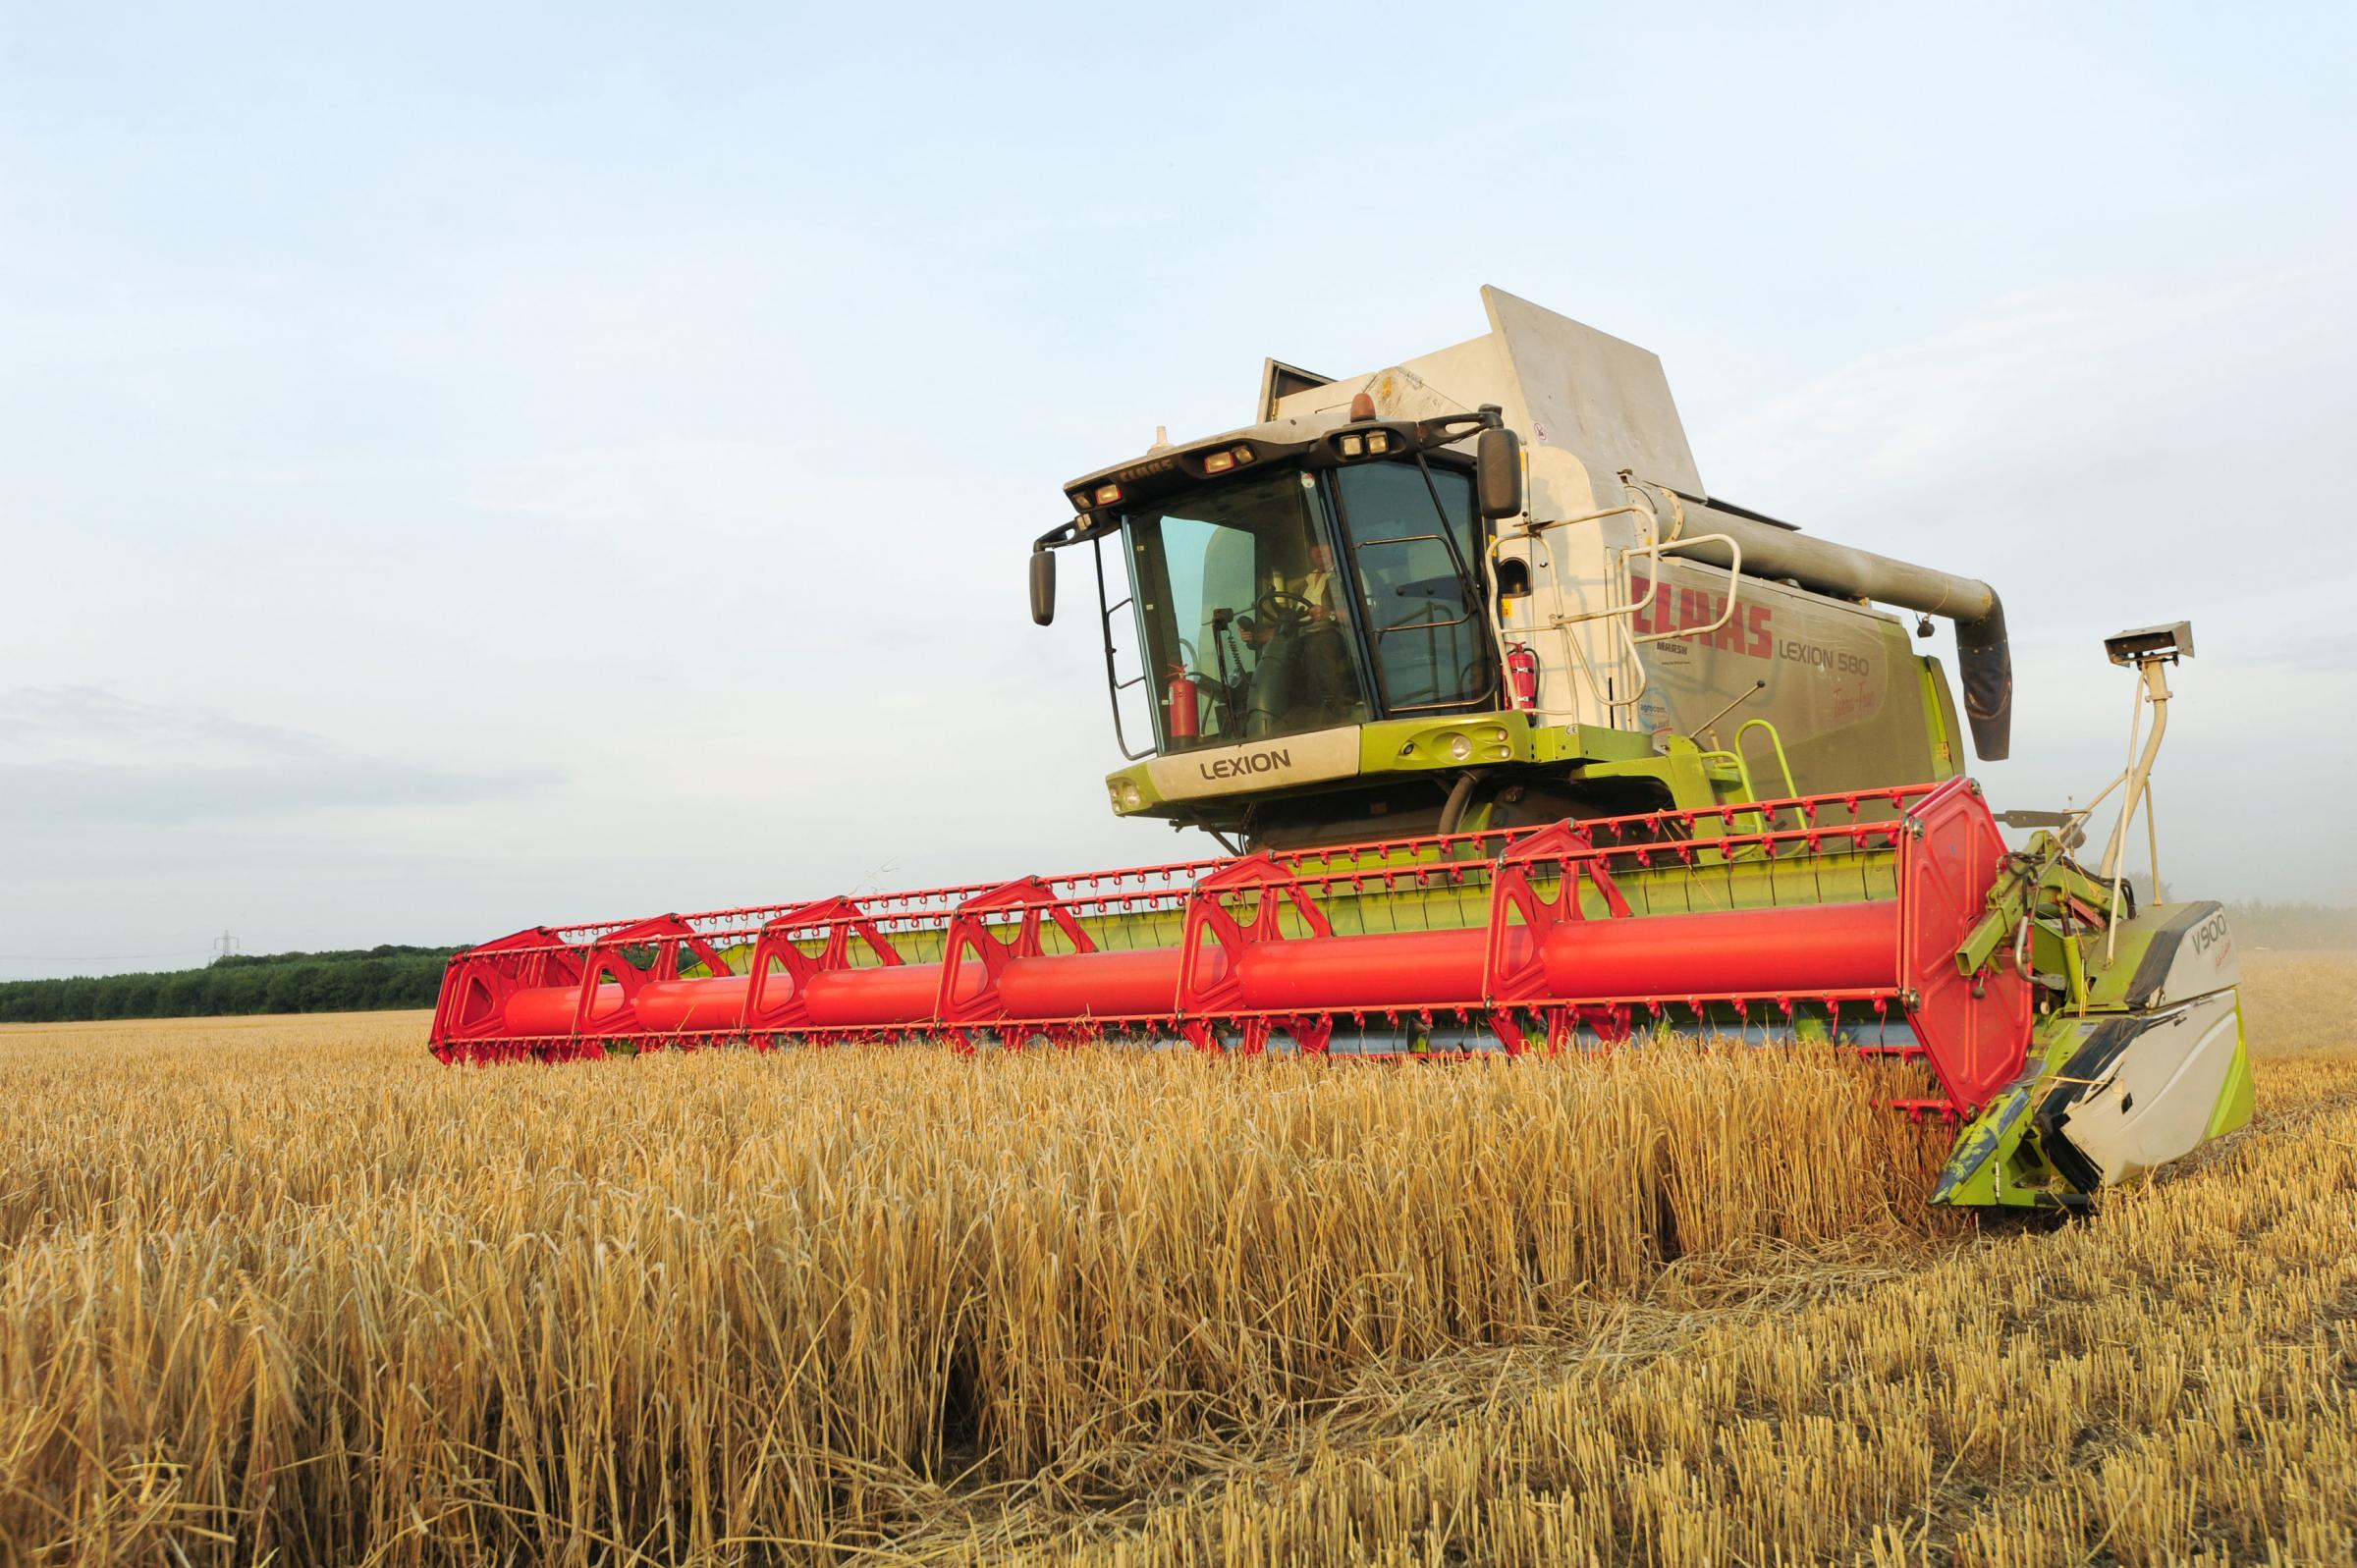 Machinery sale to take place next week